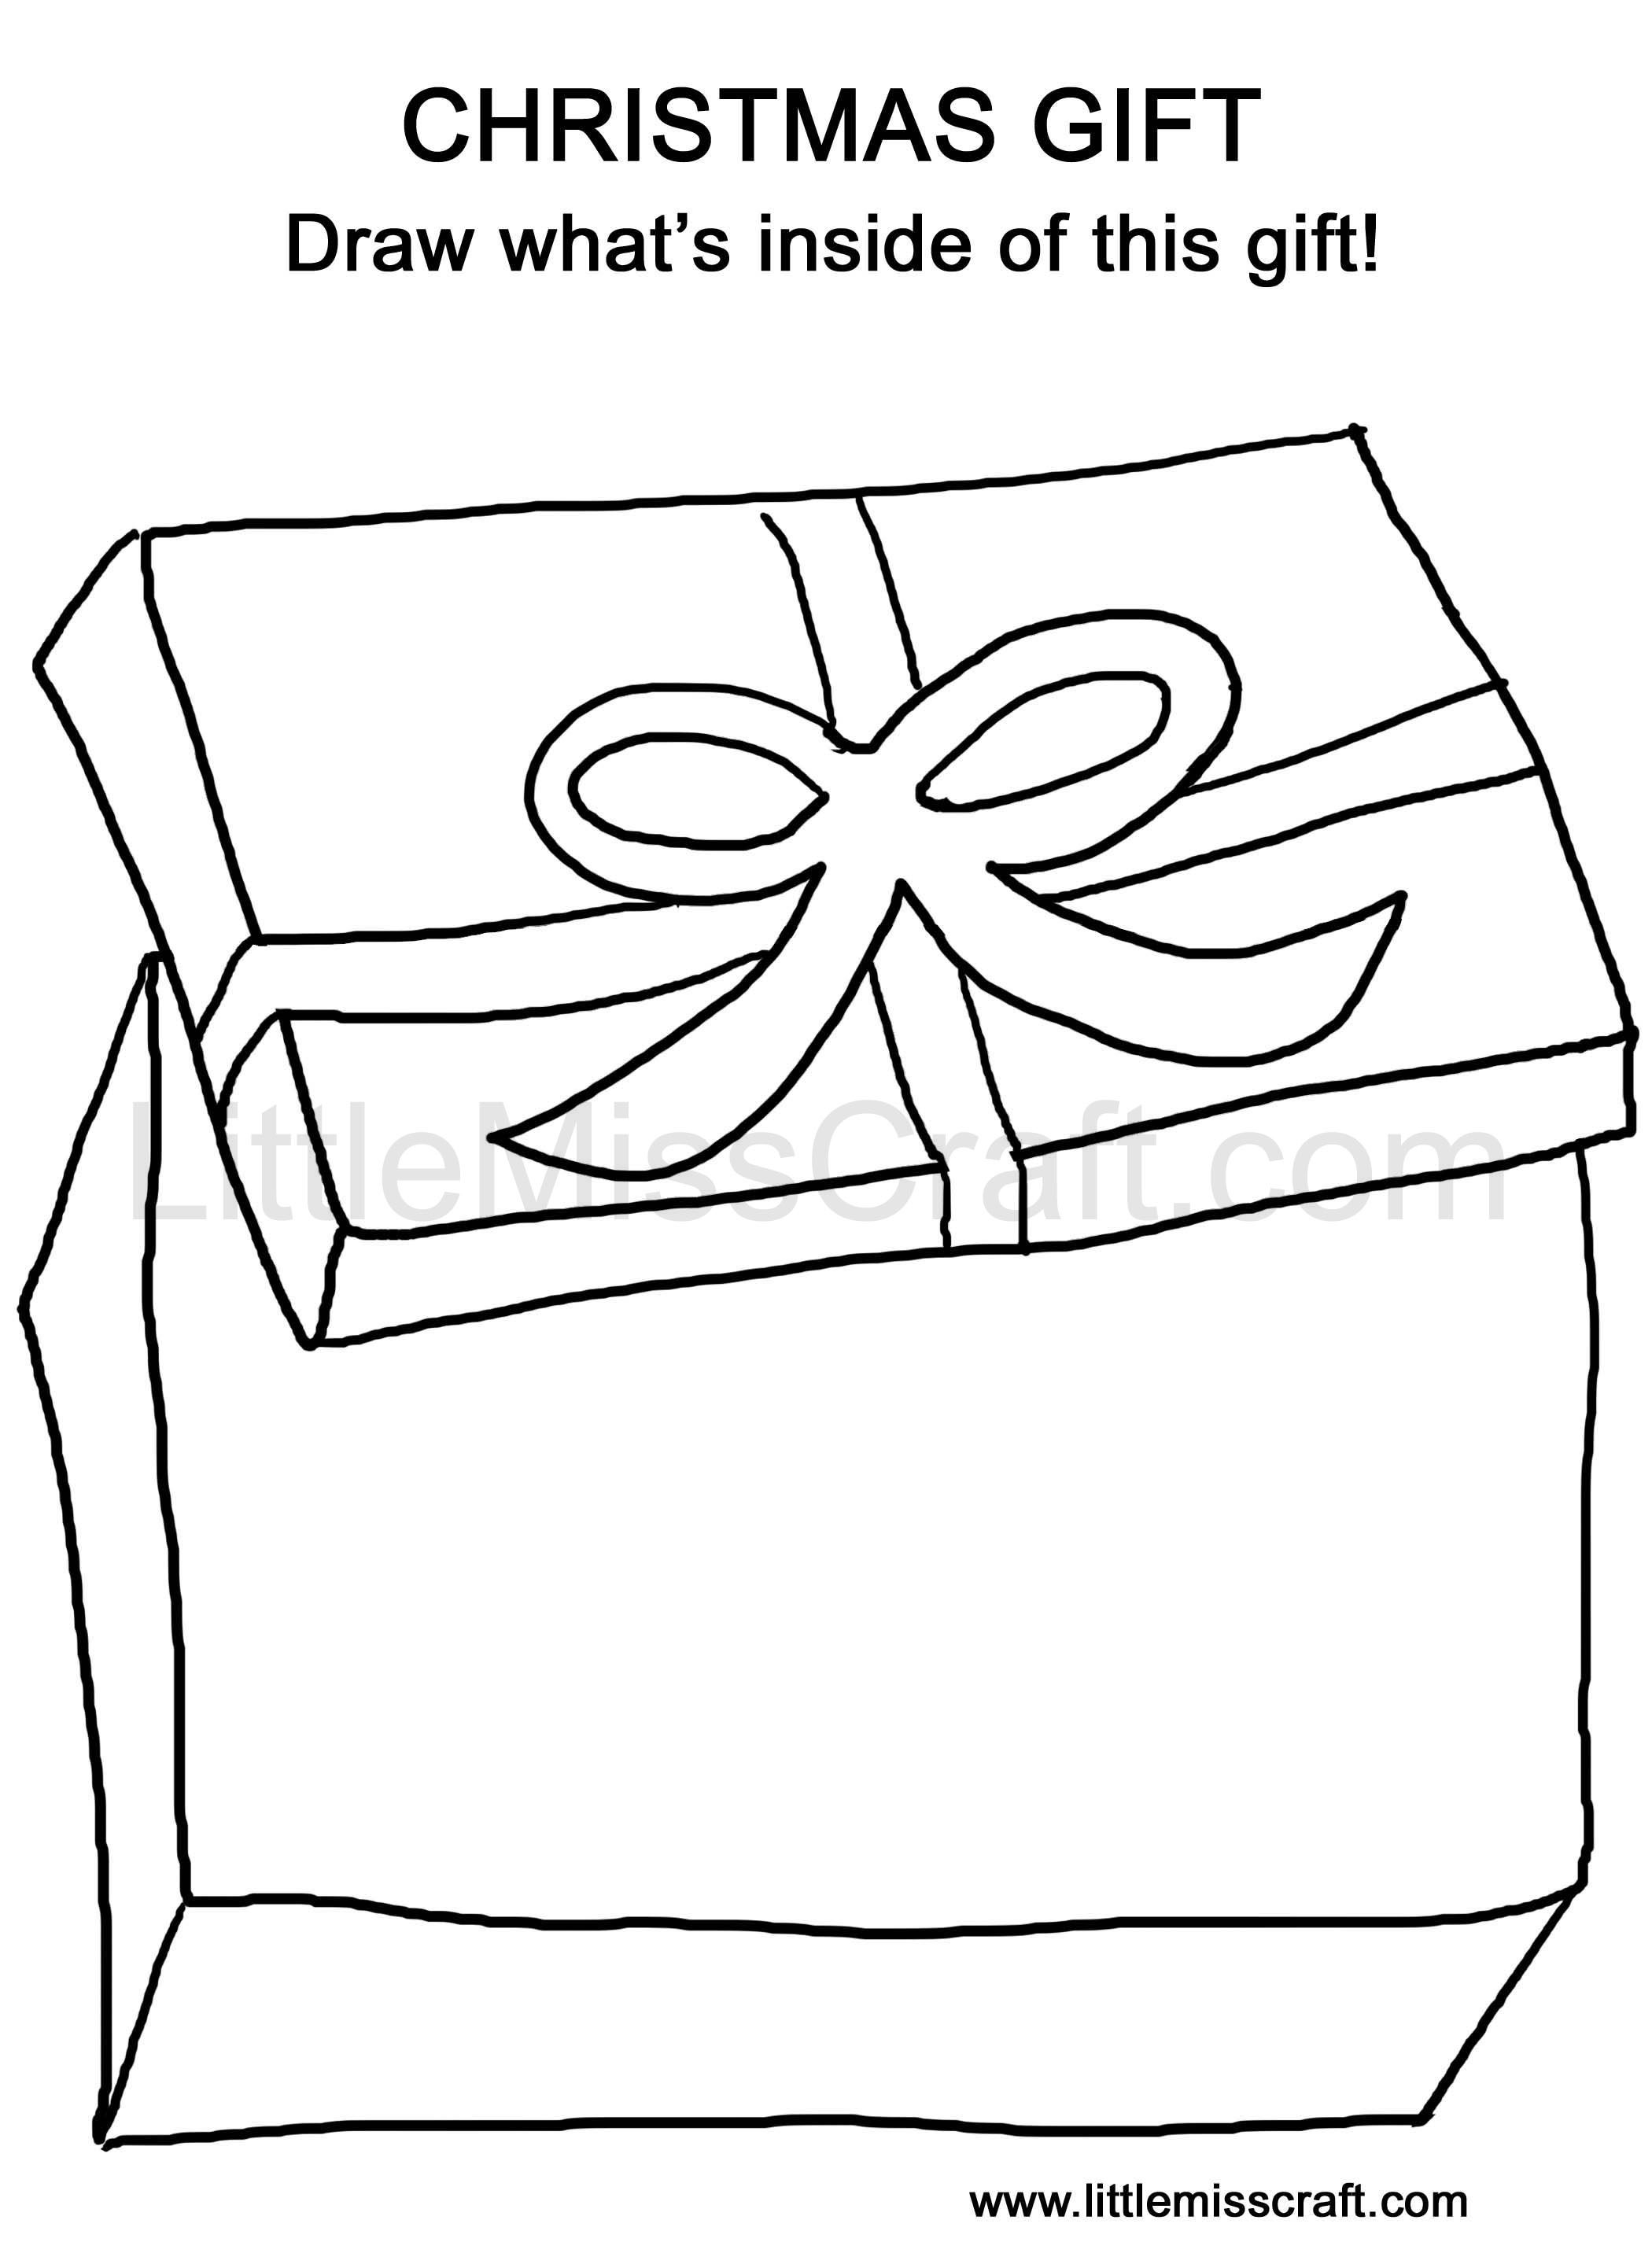 Christmas Gift Doodle Coloring Page